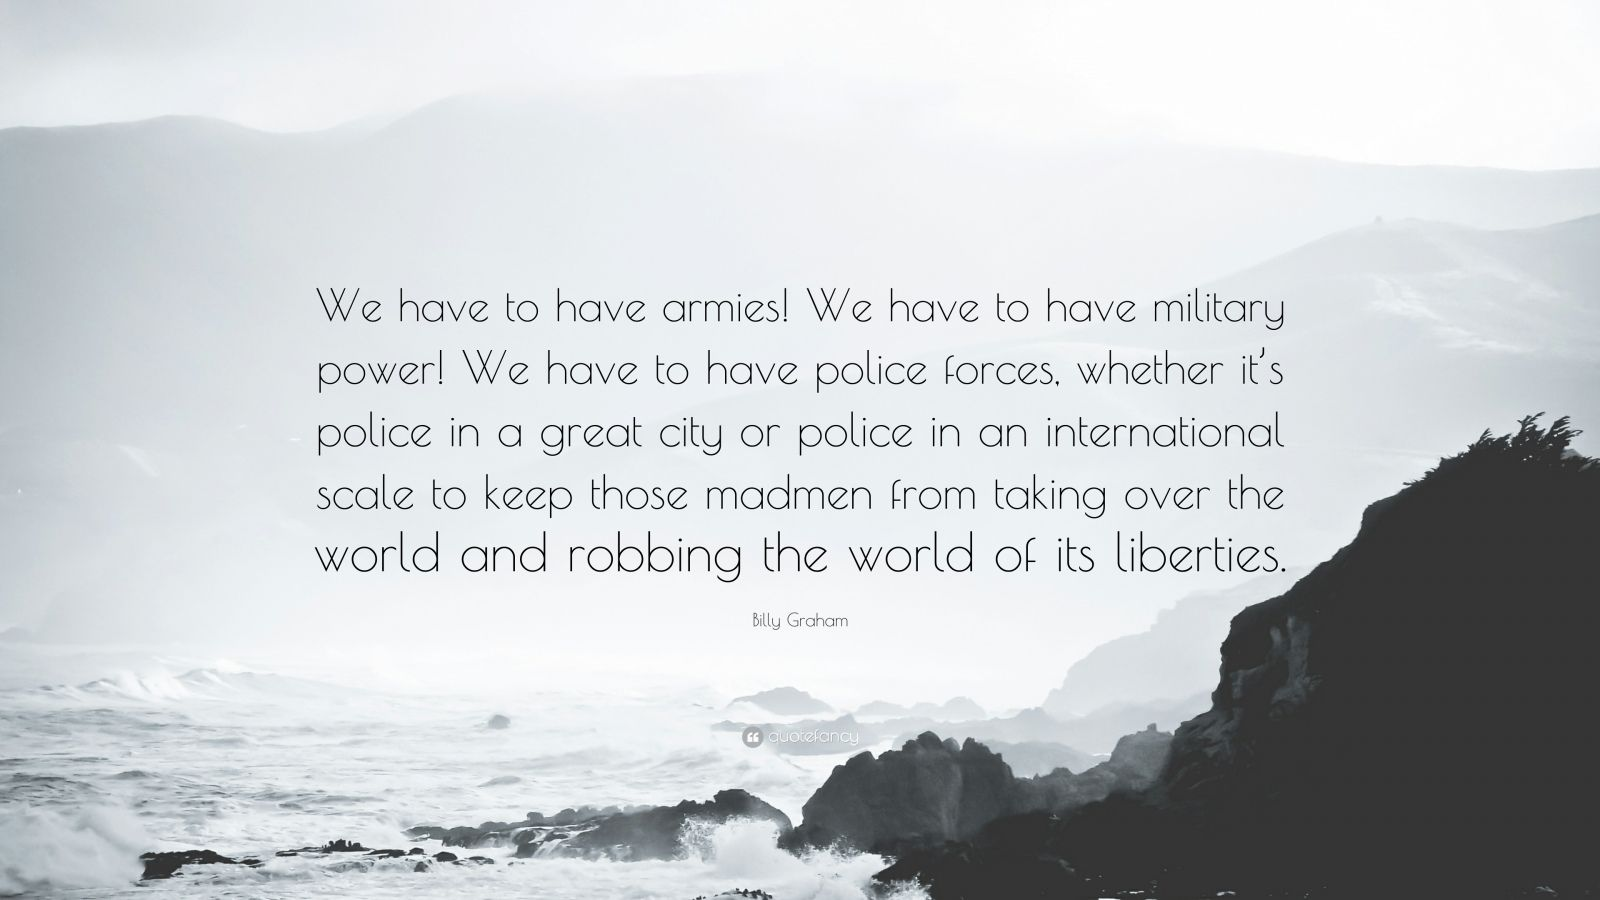 """Billy Graham Quote: """"We have to have armies! We have to have military power! We have to have police forces, whether it's police in a great city or police in an international scale to keep those madmen from taking over the world and robbing the world of its liberties."""""""